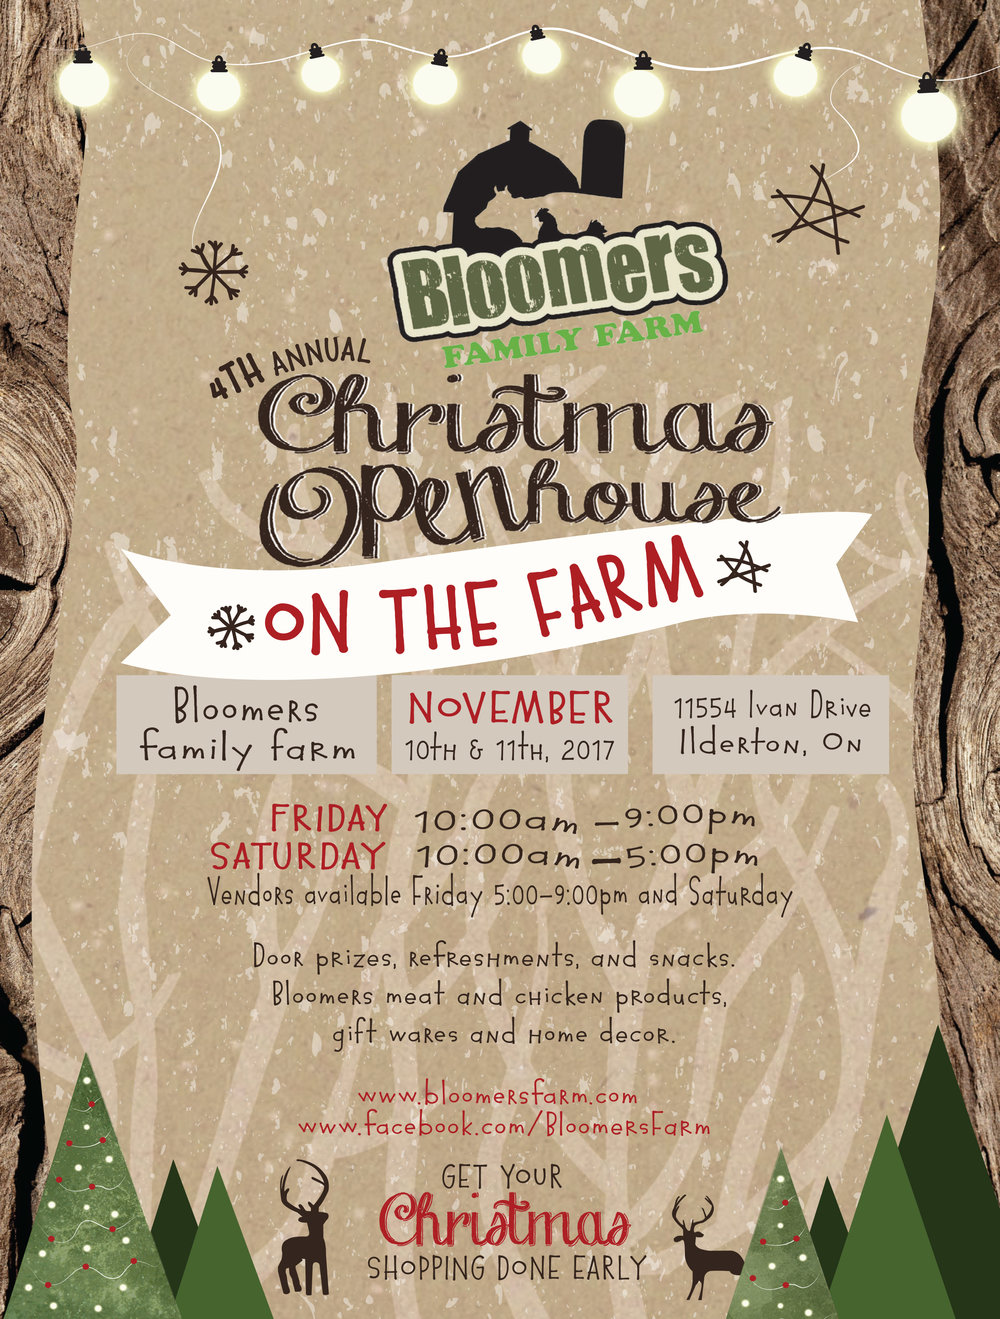 Bloomers-christmas-open-house-flyer-8.jpg